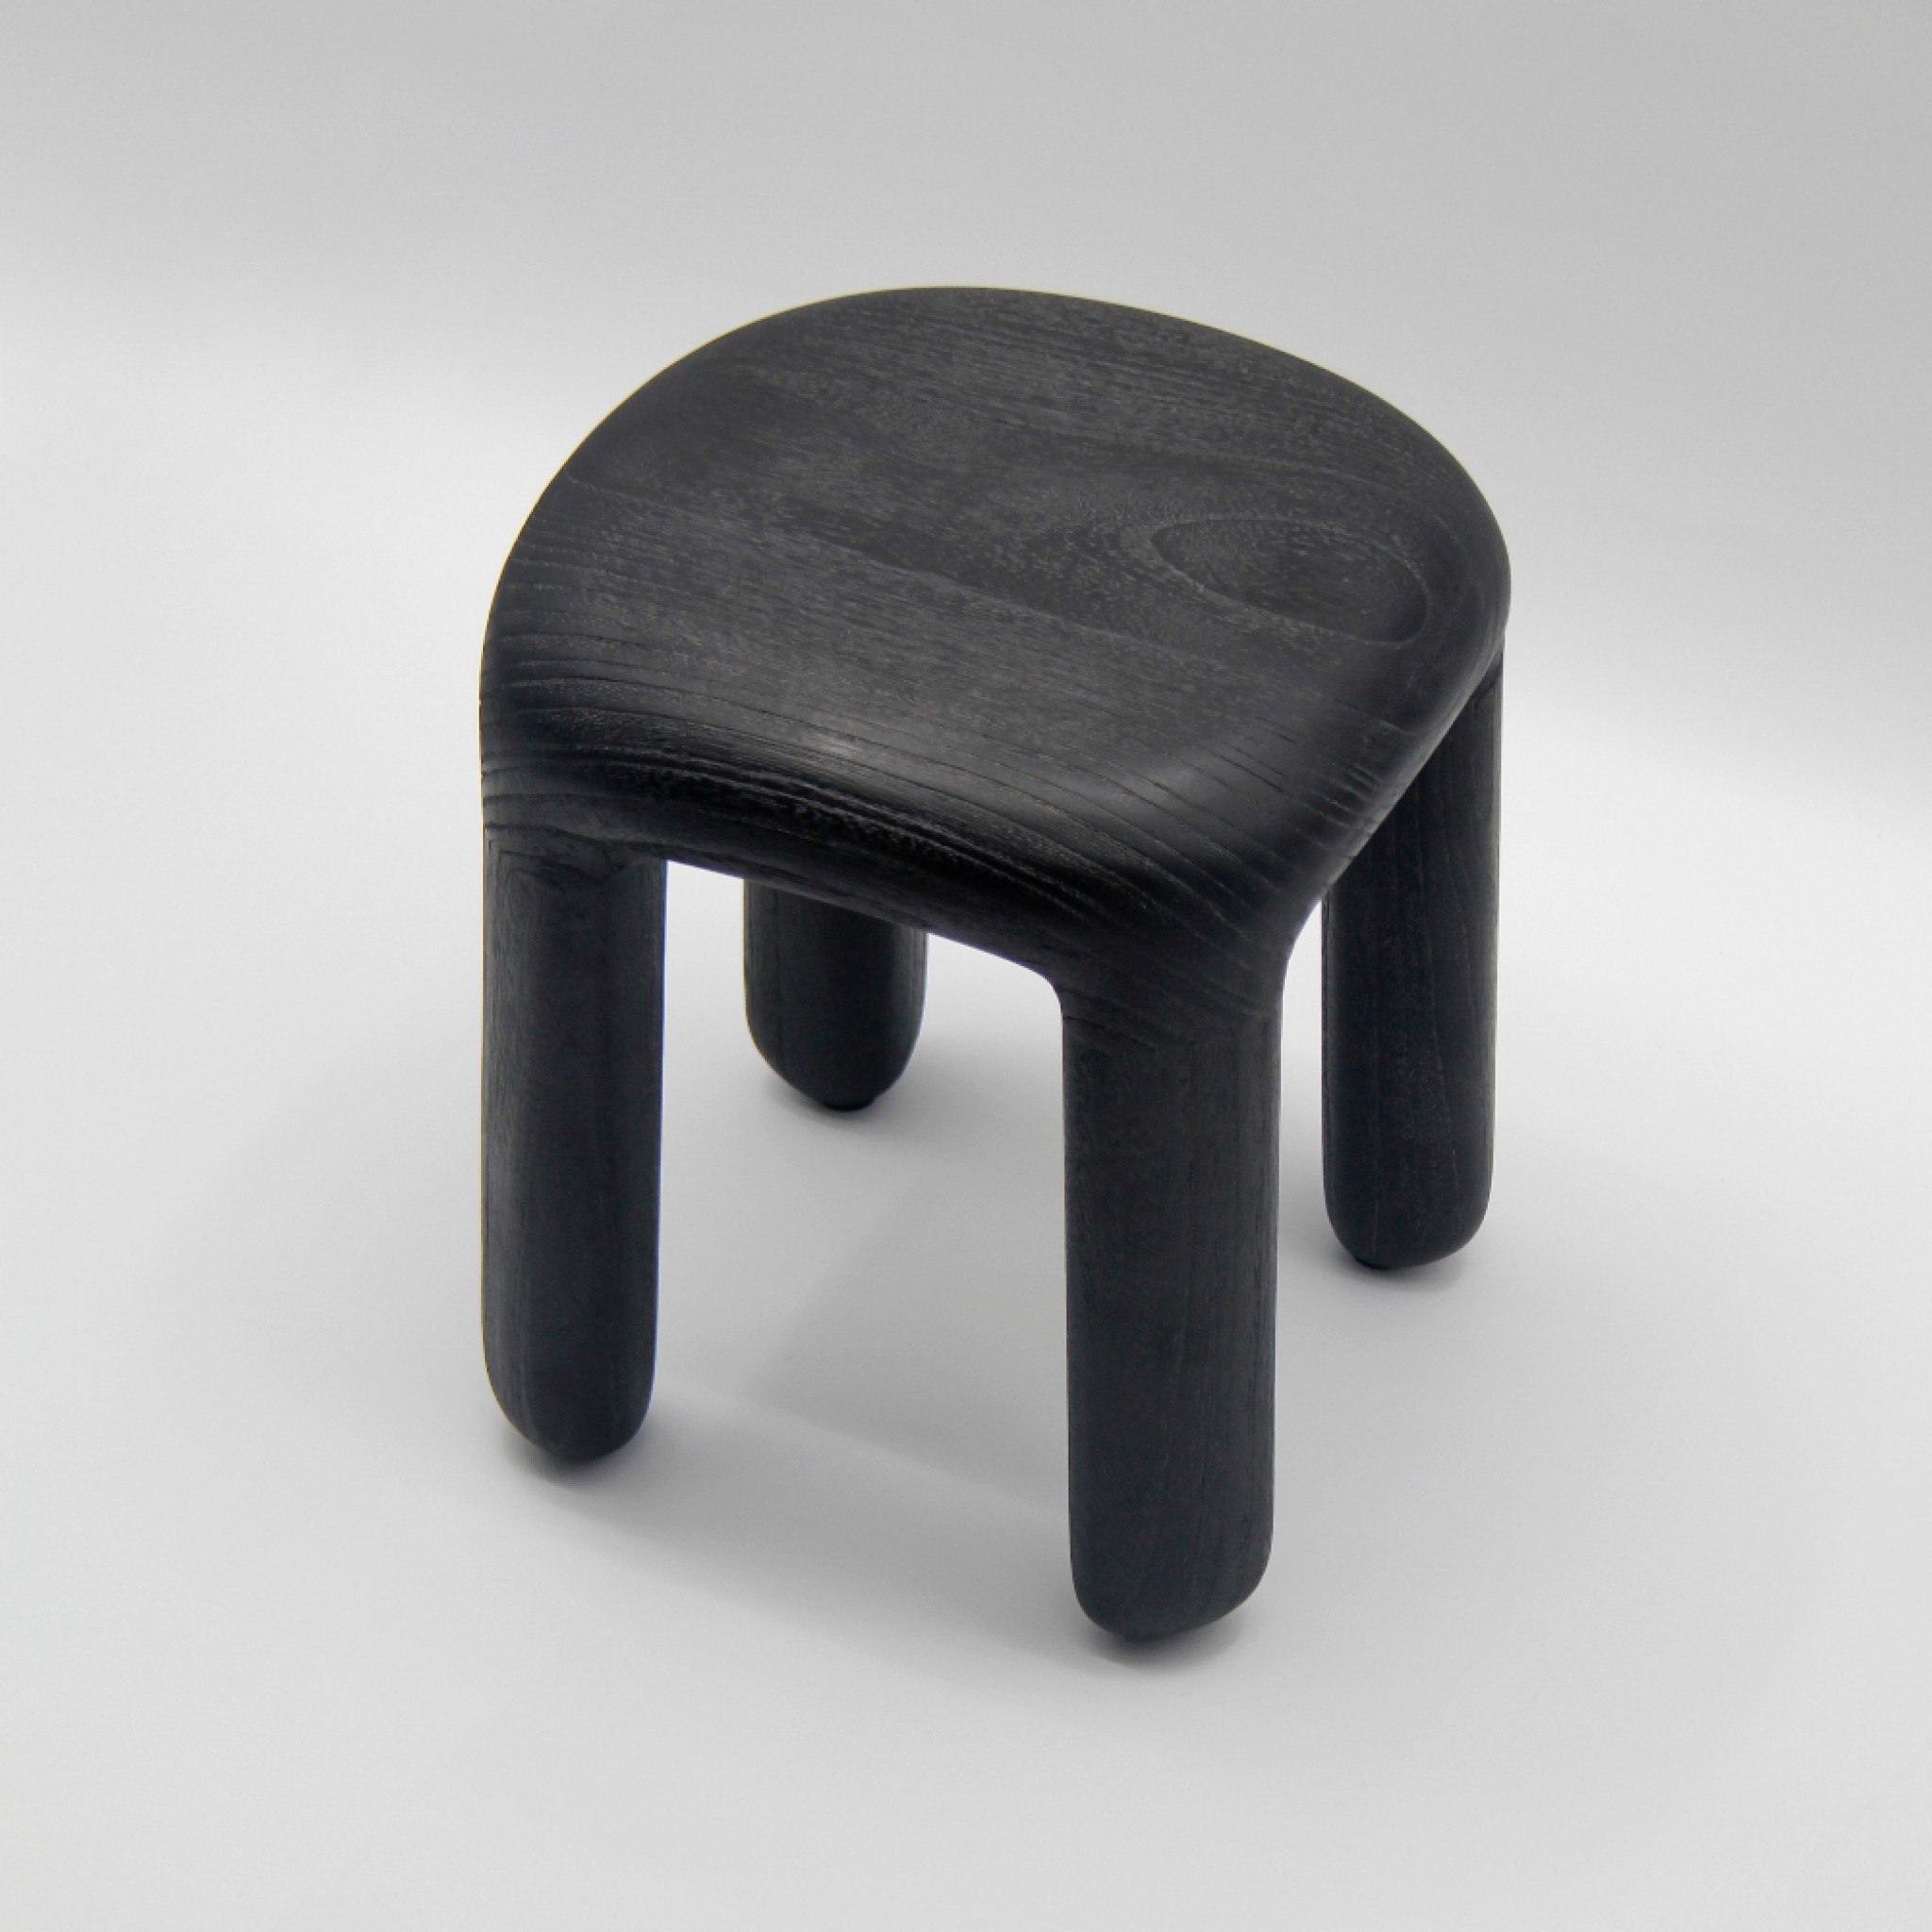 Bold Stool by Ming Design Studio